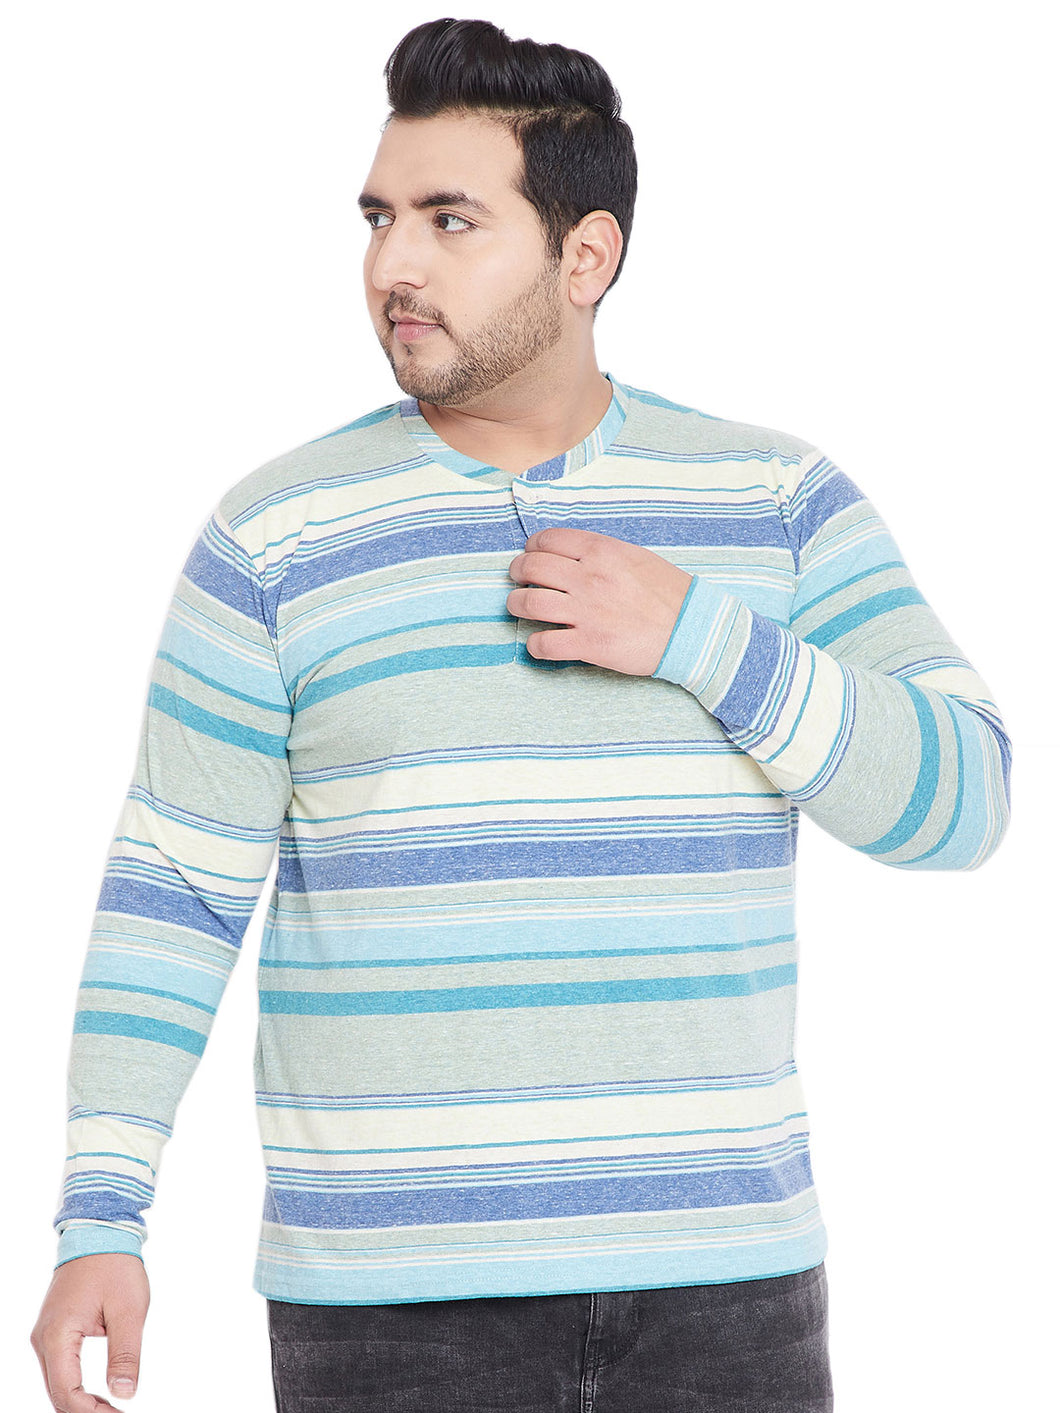 bigabanana Homer Blue & White Yarndyed Striped Henley Neck T-shirt